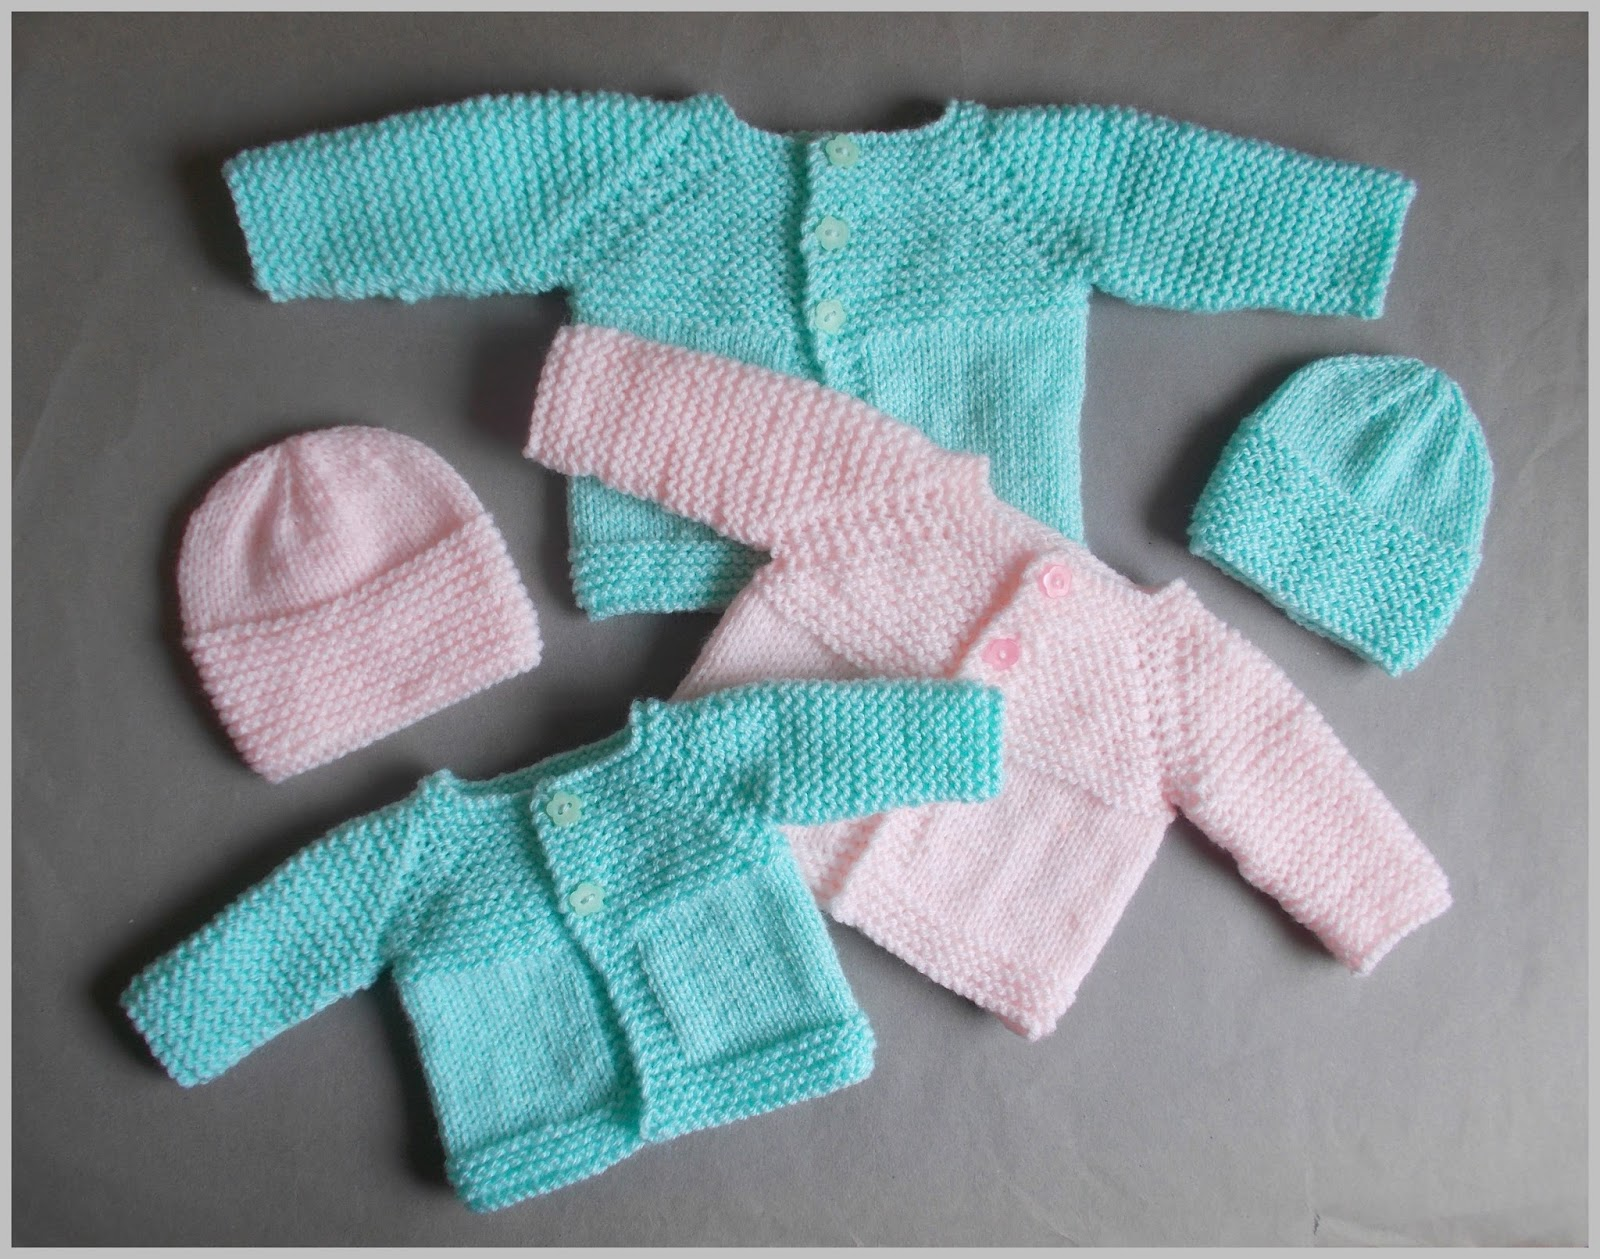 Preemie Knitting Patterns Free : mariannas lazy daisy days: Little Babbity - Premature ...